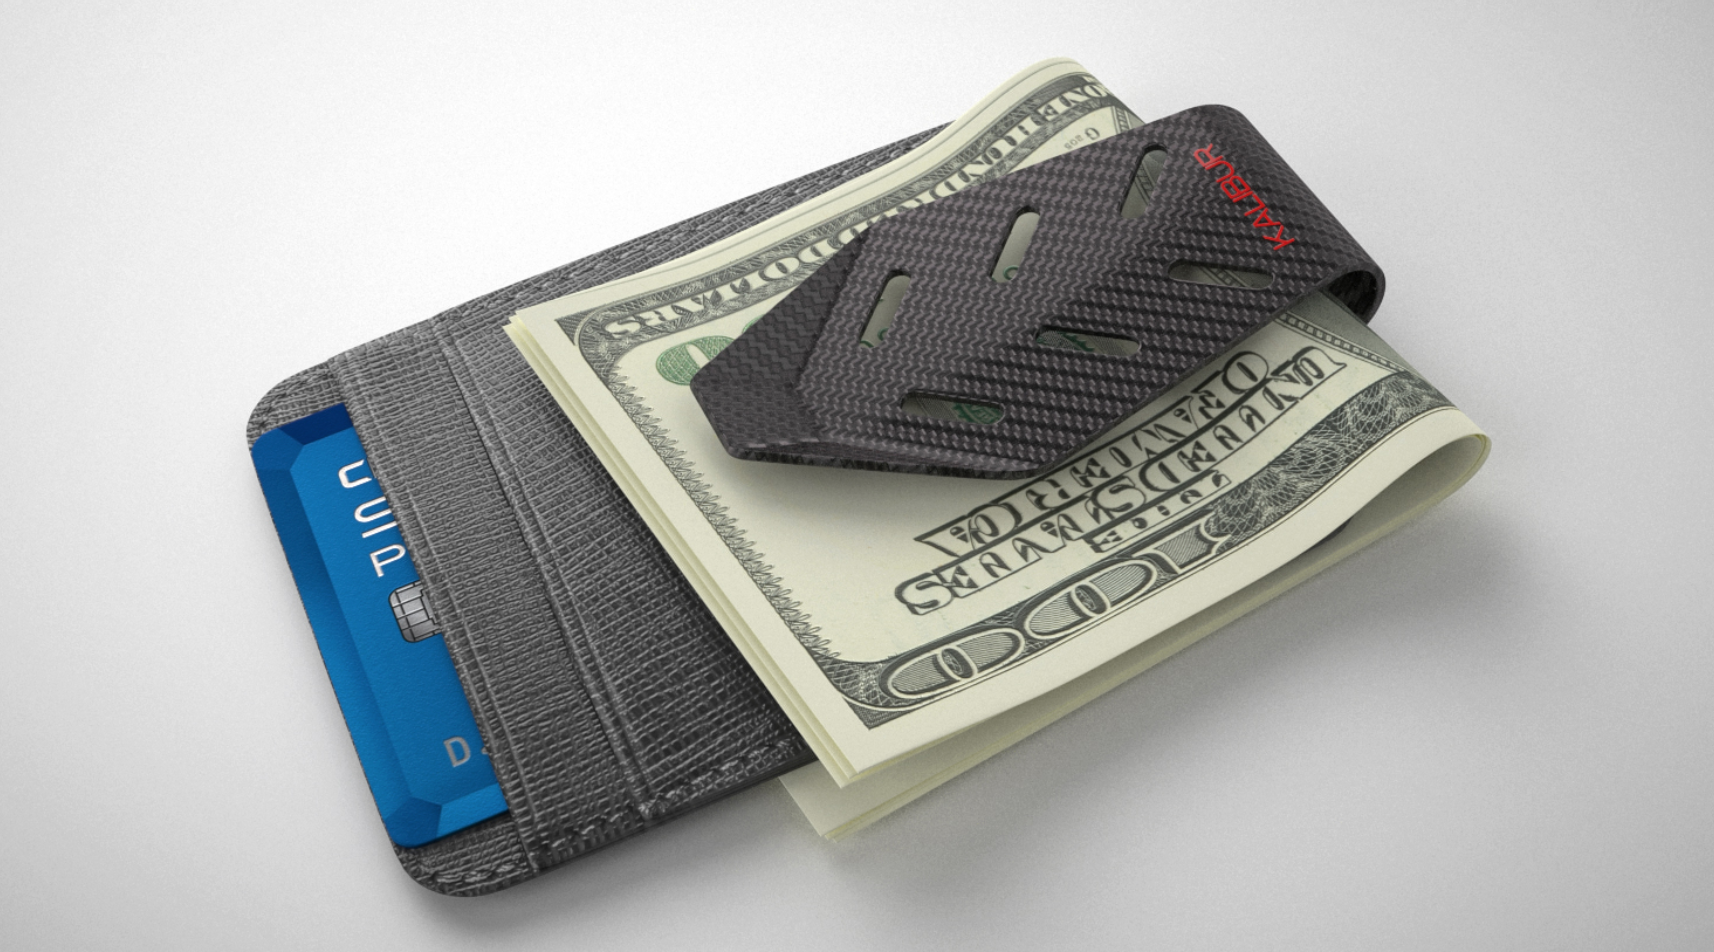 Design featured a card holder to protect and hold up to 8 cards. The back of the clip was designed to look like a race car pedal.